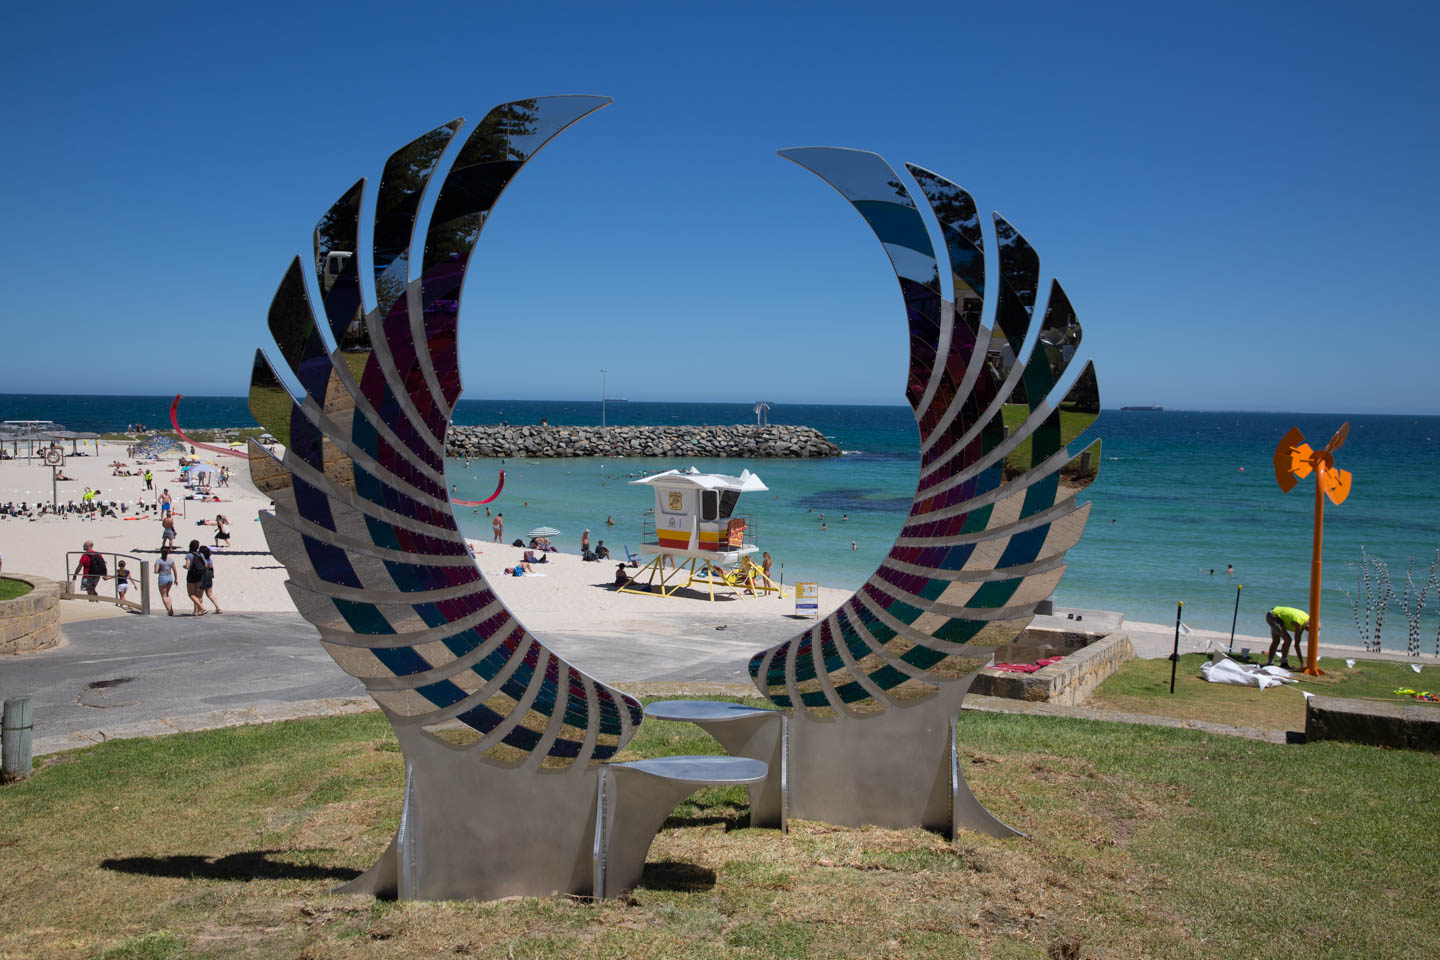 Sculpture By The Sea 2018